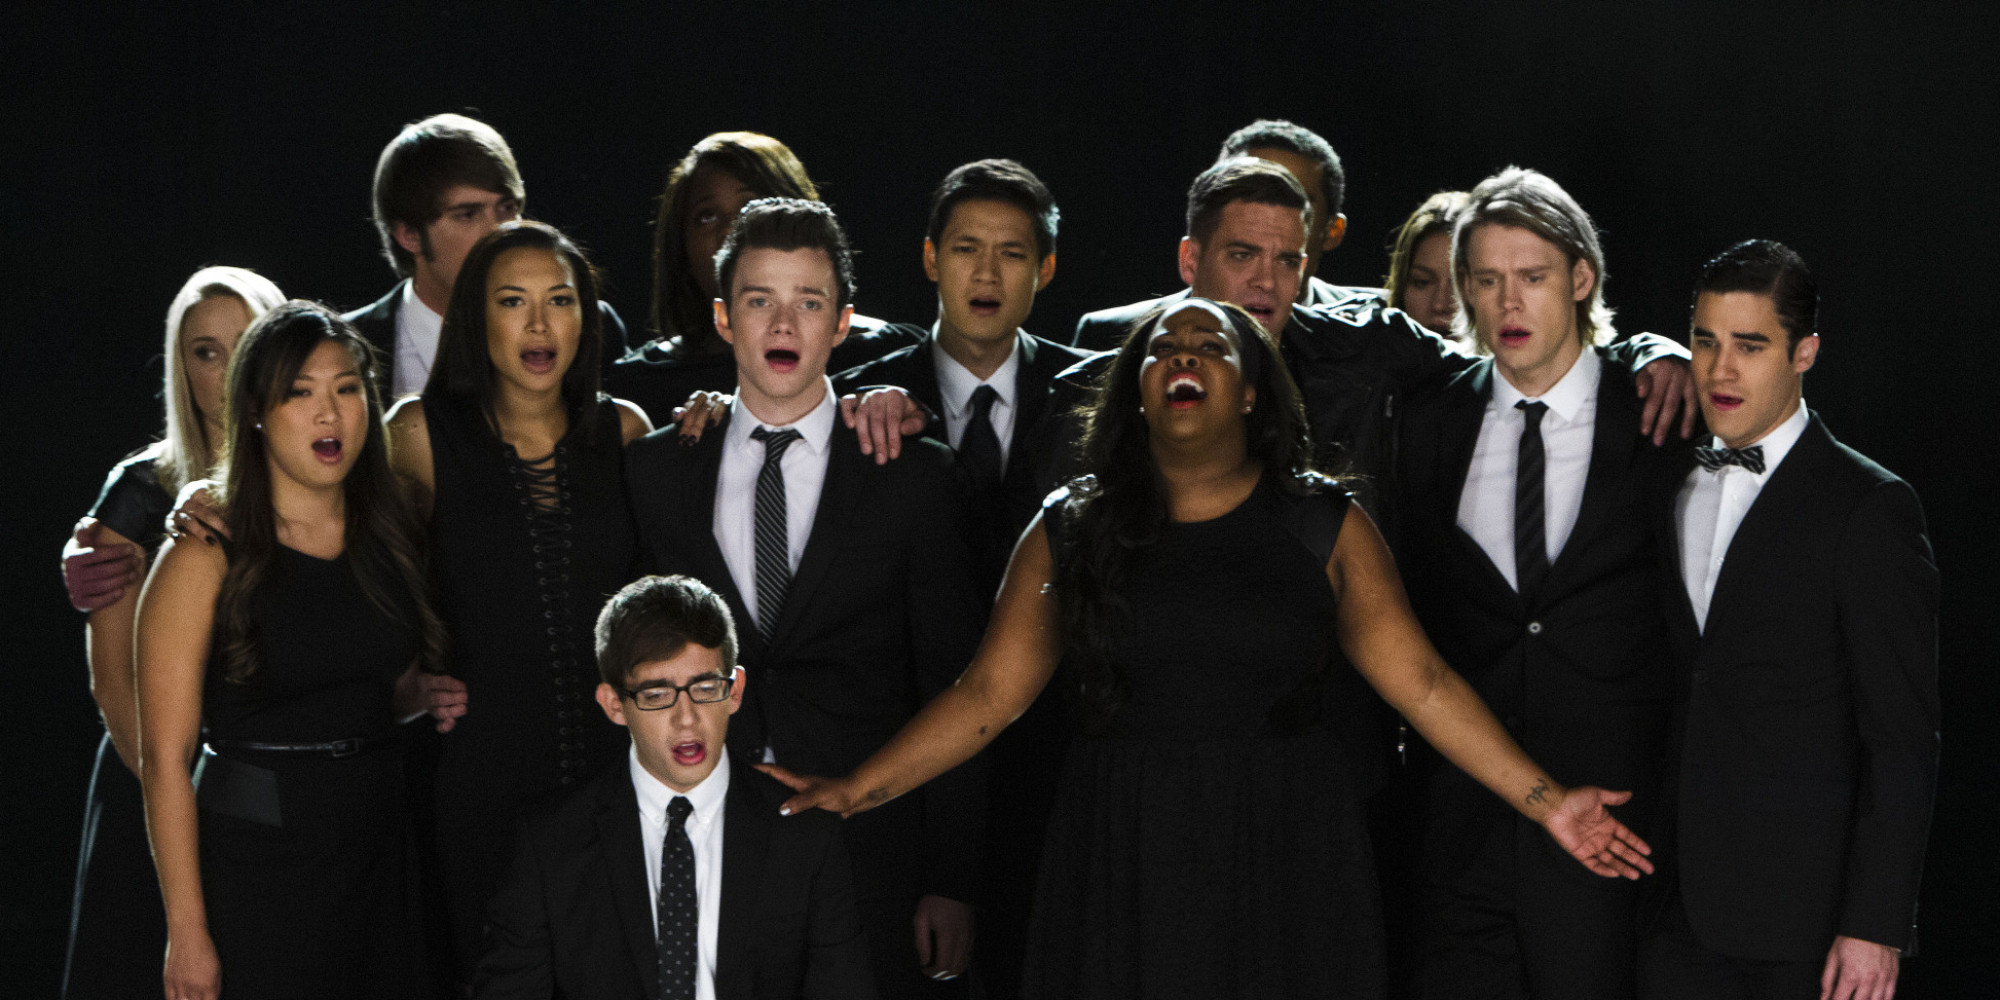 'Glee' Cast Records PSA, Pays Respects & Thanks Fans ...